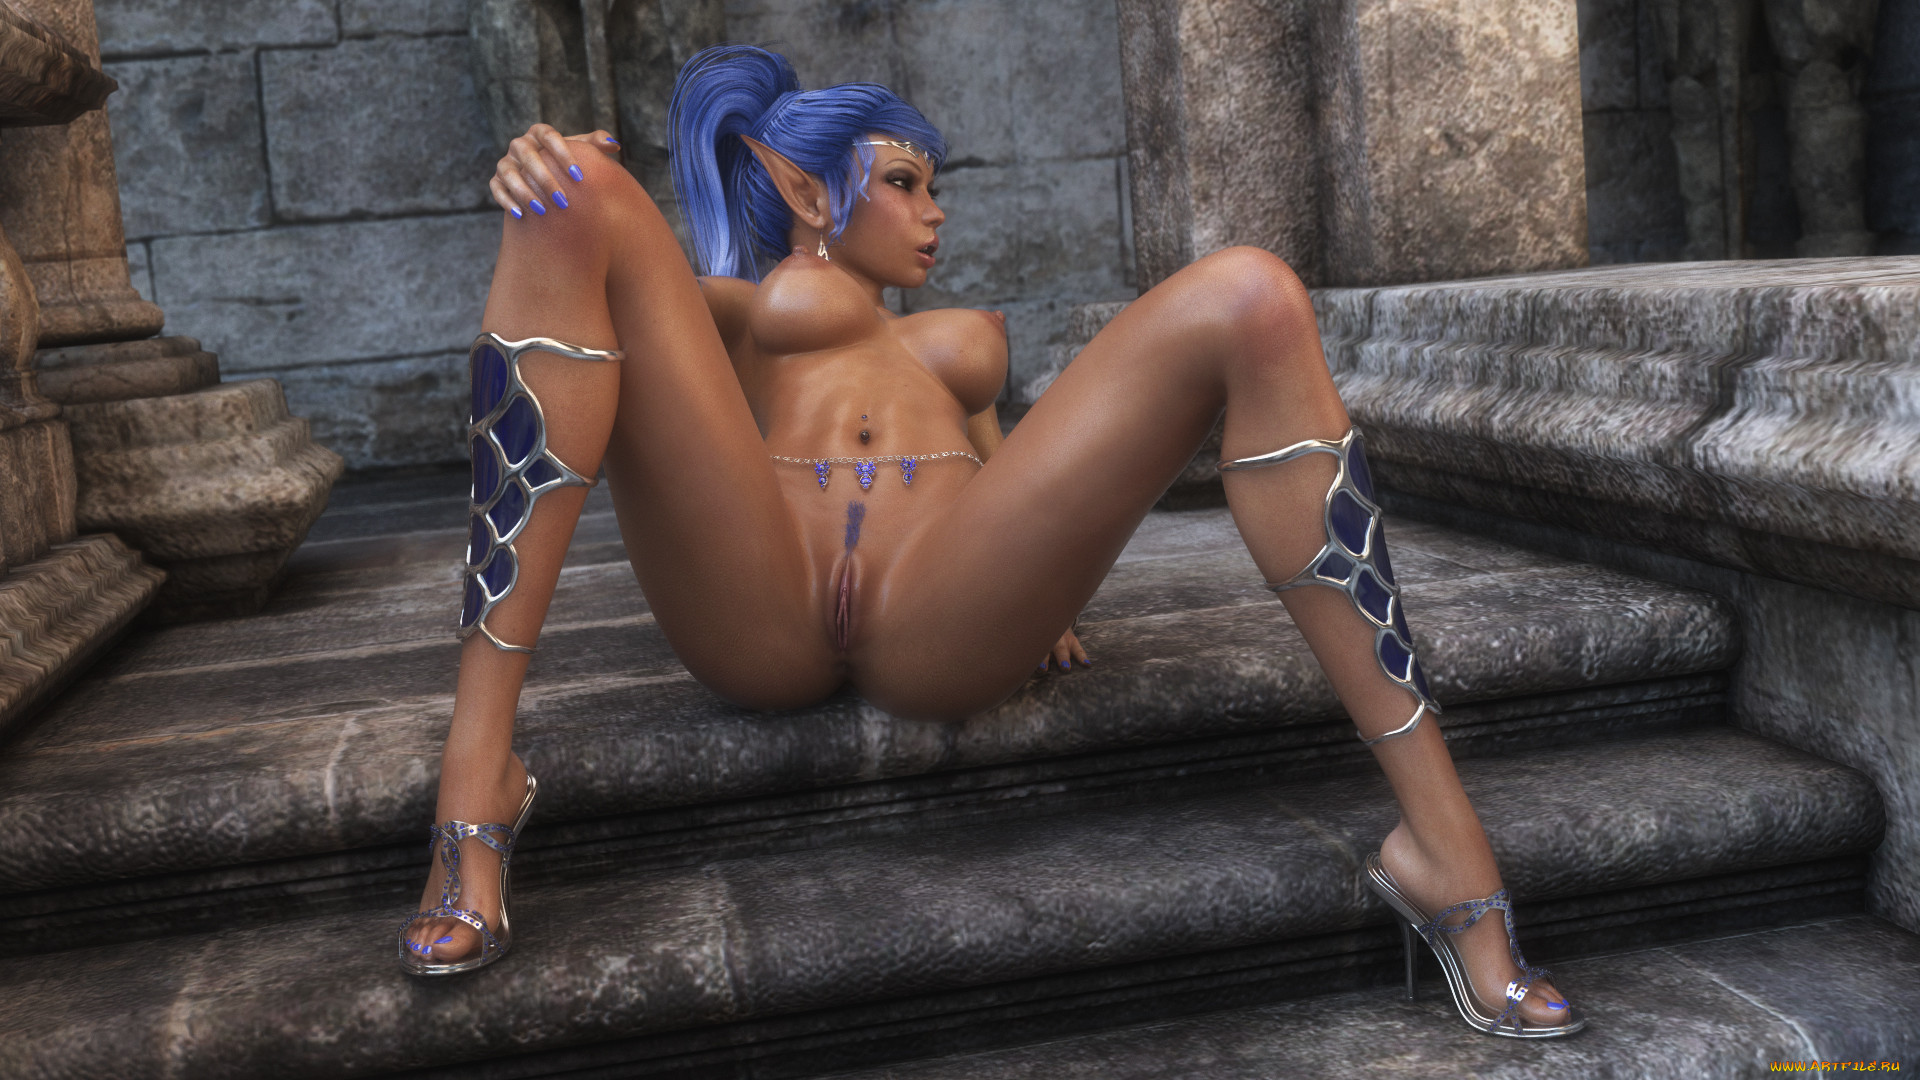 Nude elf porn phone wallpaper nackt photos